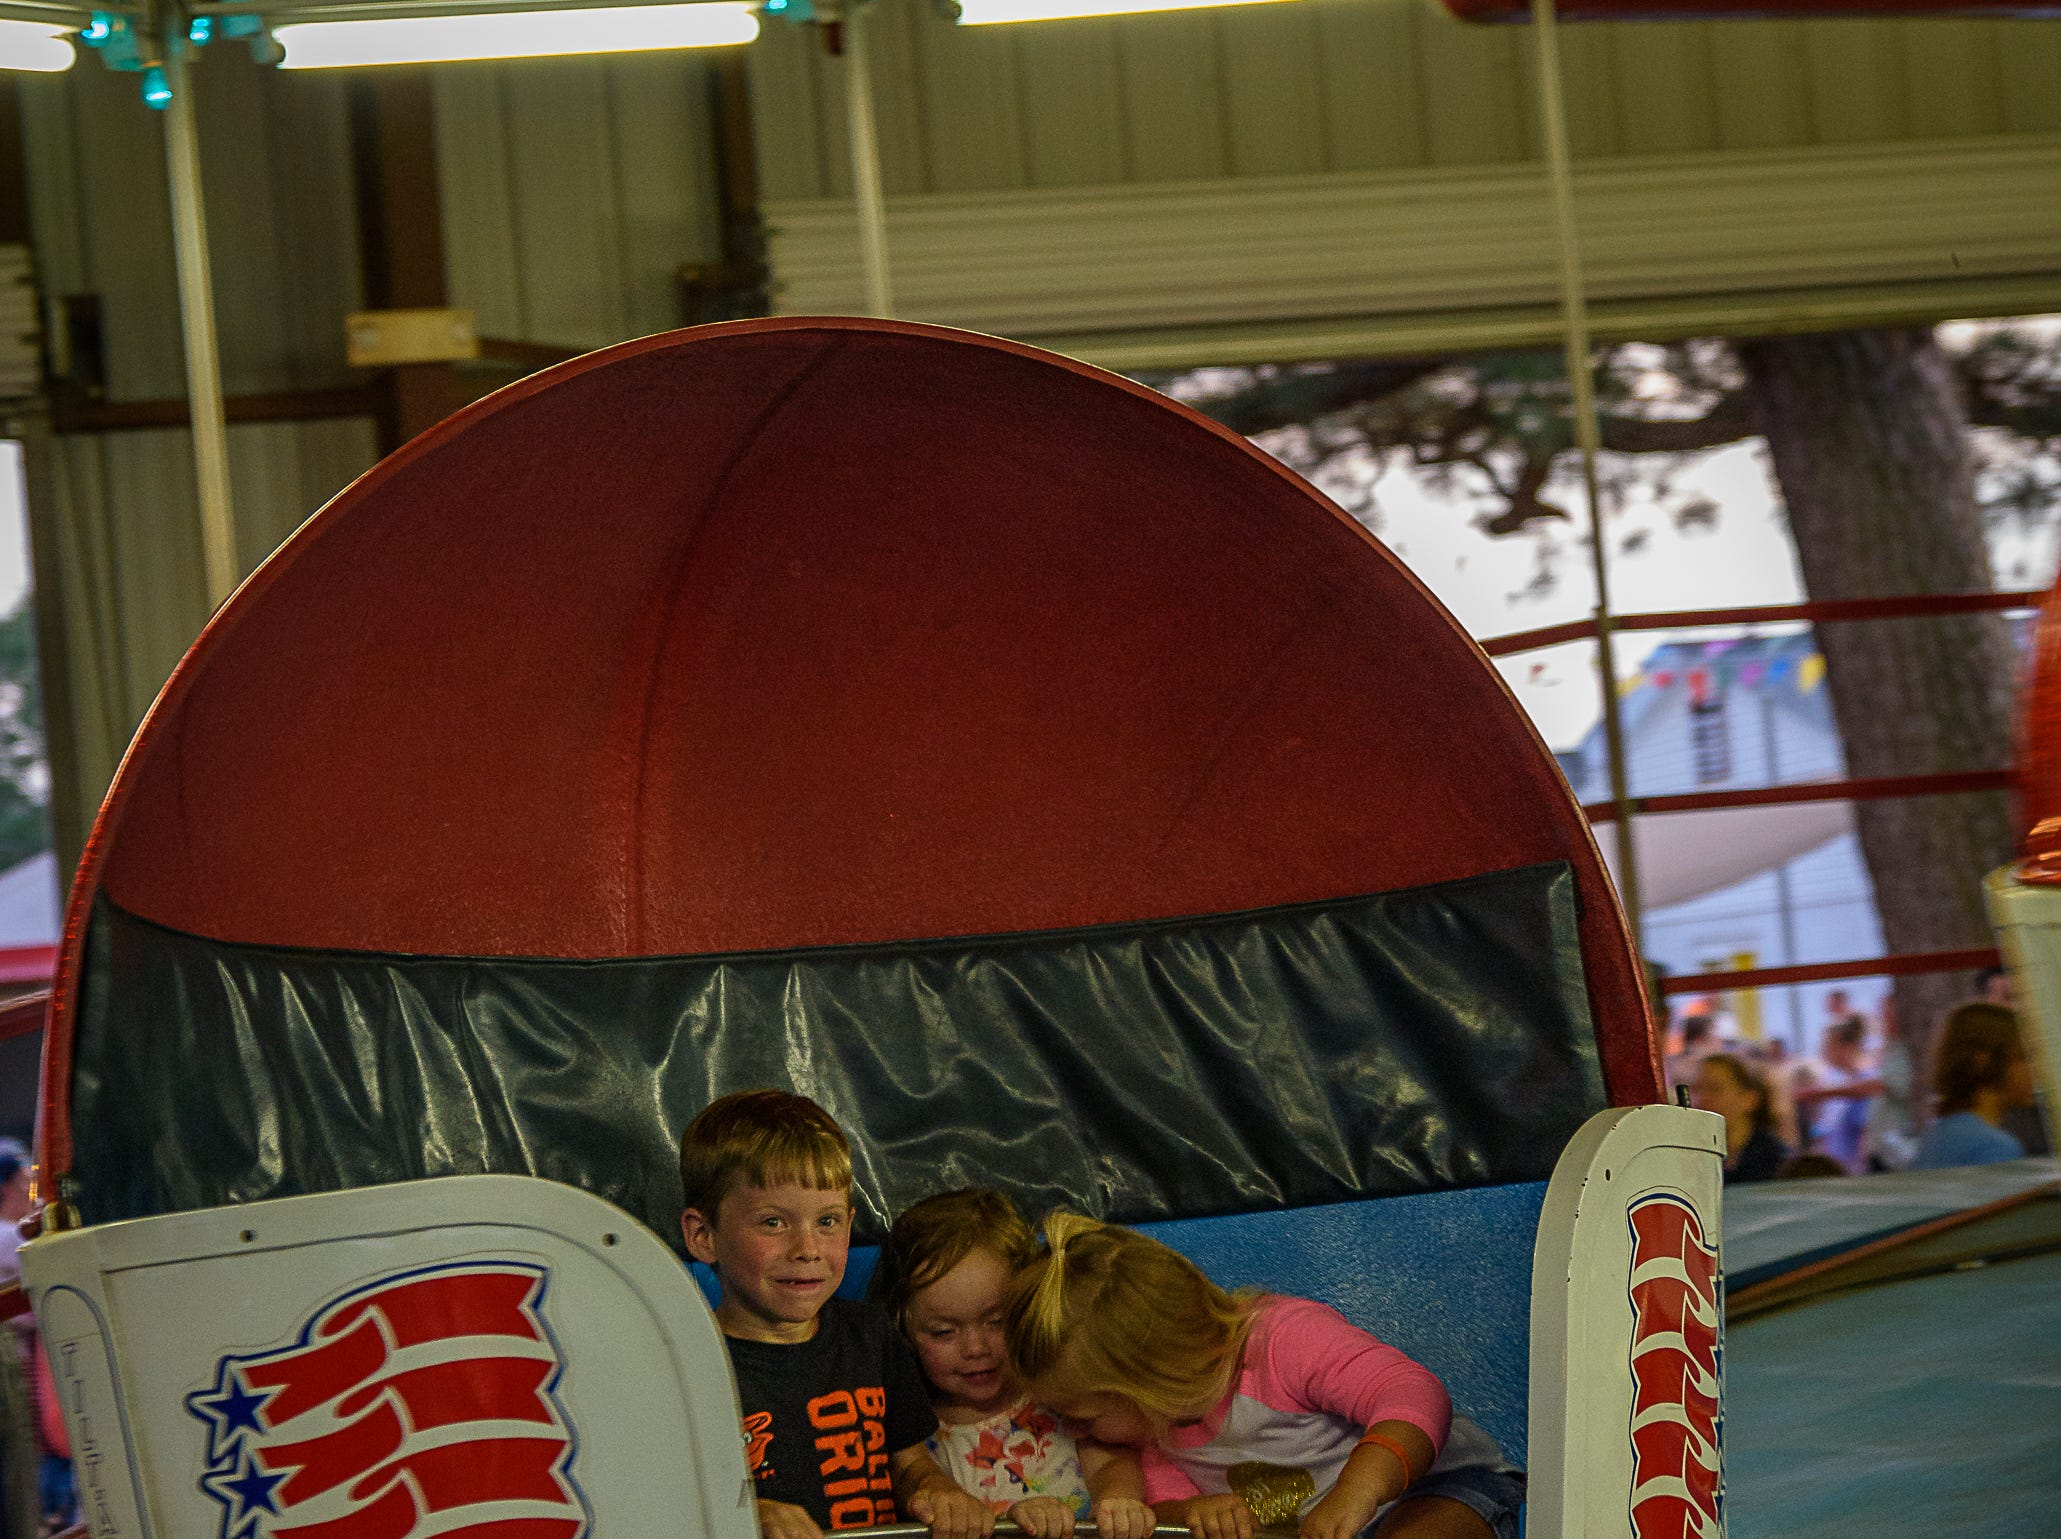 The Tilt-a-Whirl was one of the most popular attractions at the Chincoteague Fireman's Carnival.